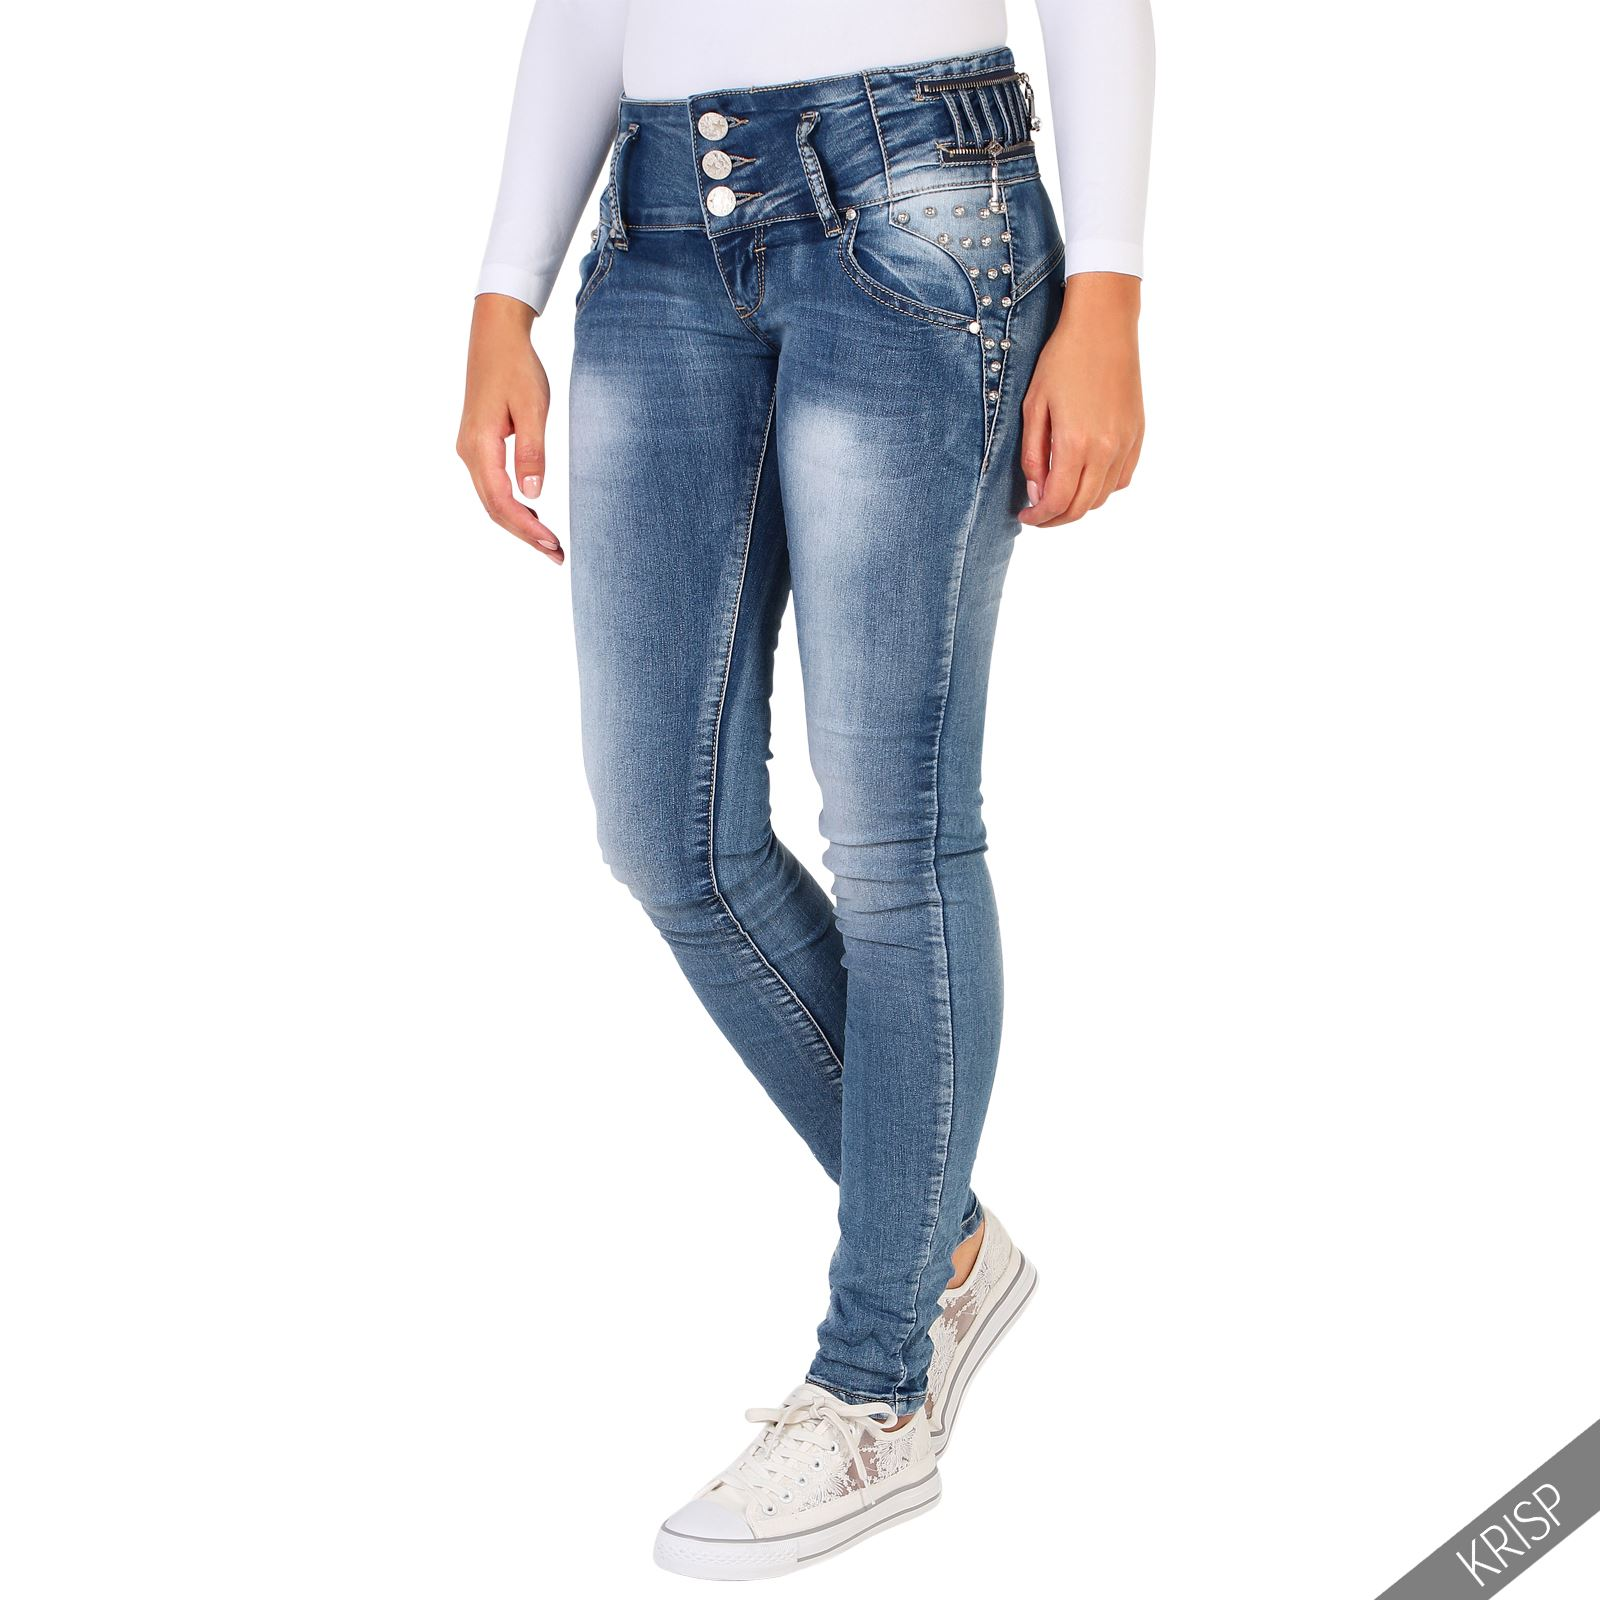 Women Ladies Fashion Skinny Jeans Hipster Pants Slim Fit Leg Faded Stretch Denim